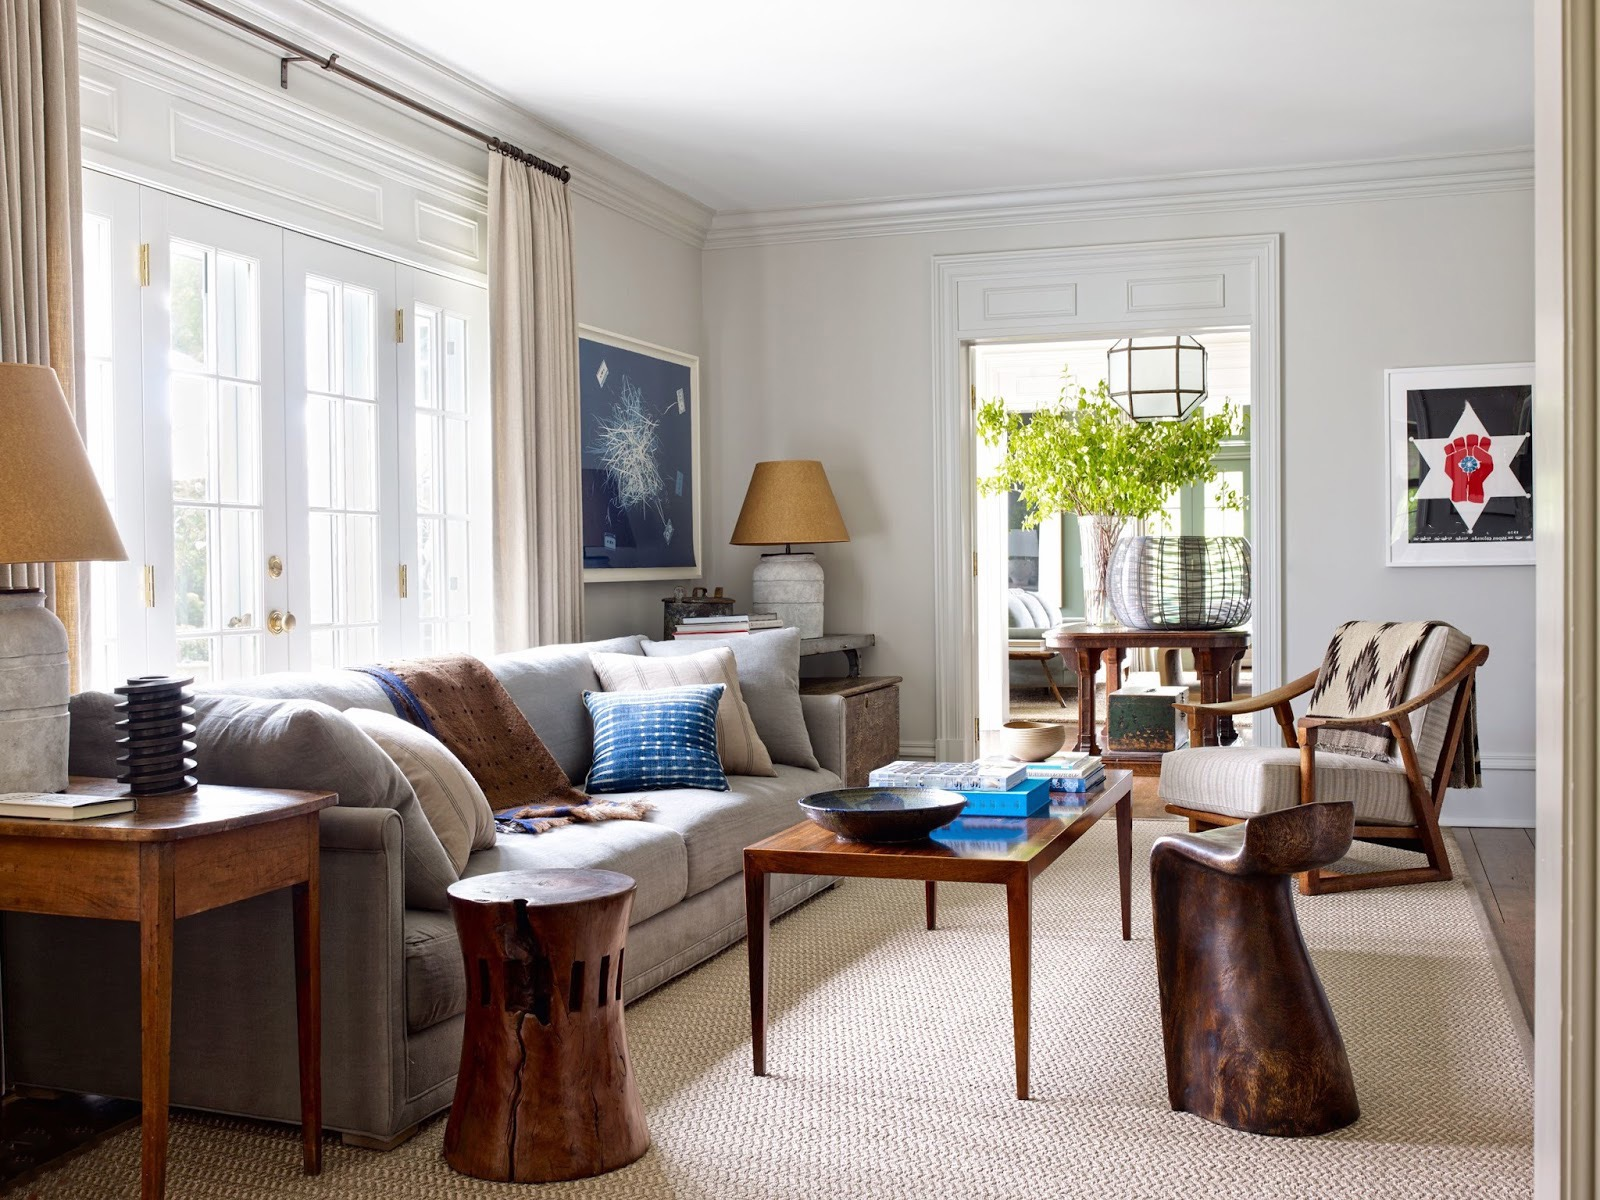 Rustic Living Room With Wood Chair And Braided Rug (View 15 of 15)